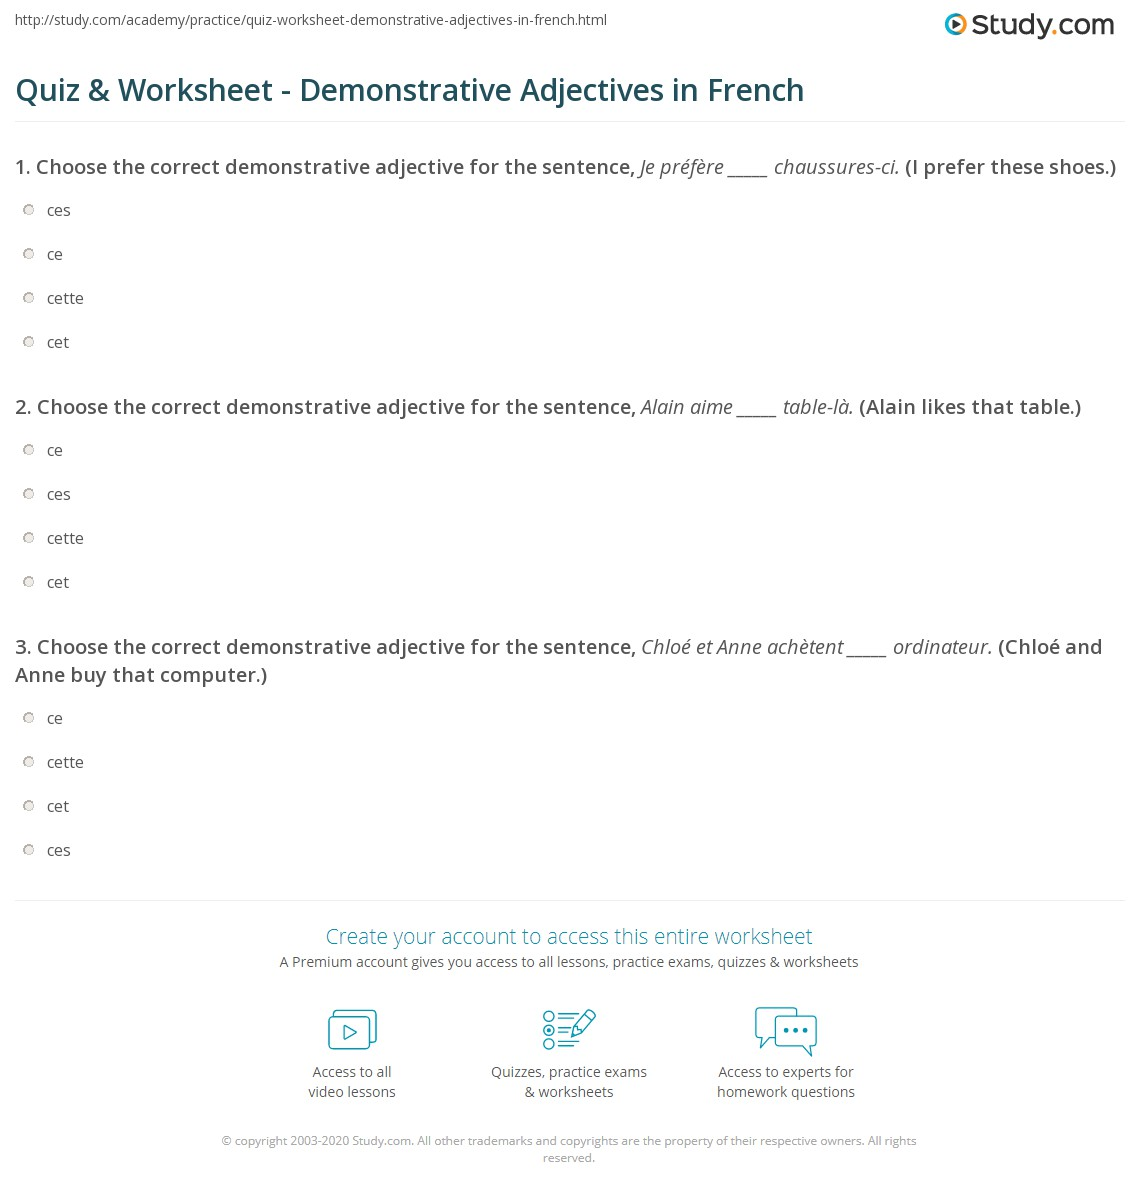 hight resolution of Quiz \u0026 Worksheet - Demonstrative Adjectives in French   Study.com